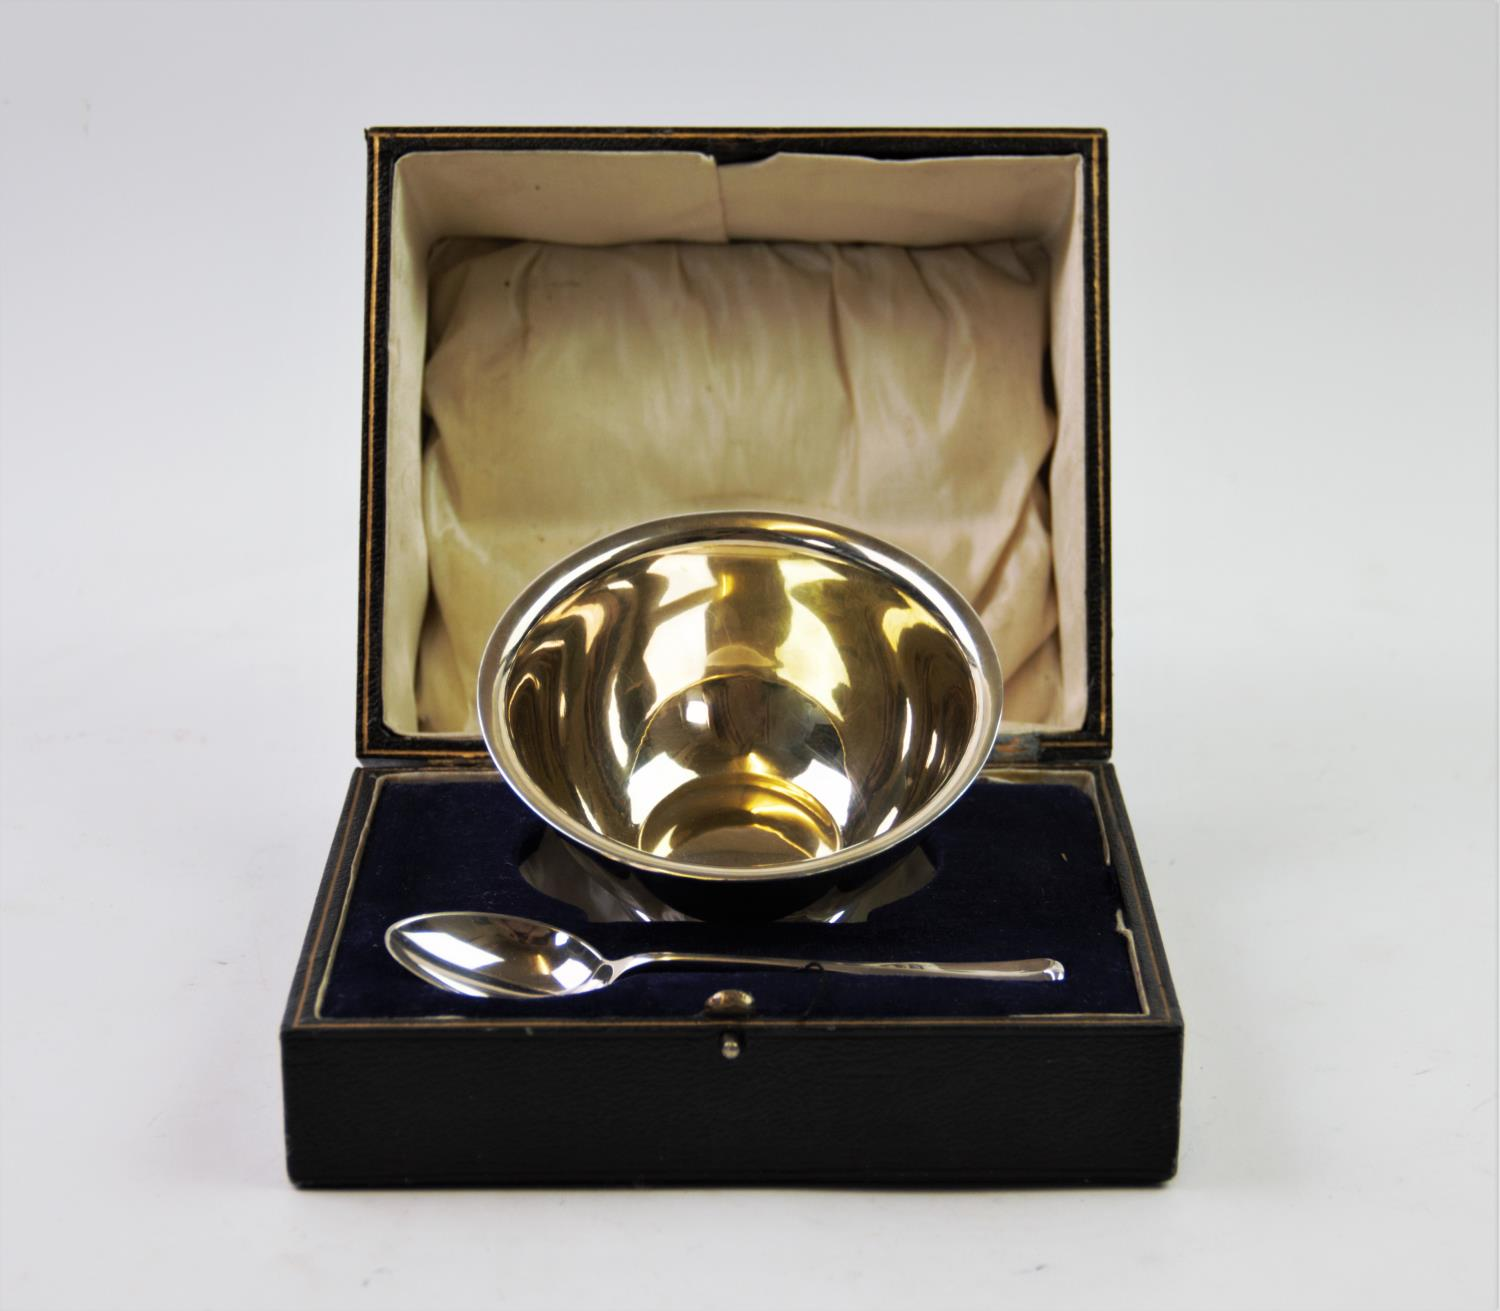 Lot 56 - A George V silver christening set, comprising: a silver bowl, Atkin Brothers, Sheffield 1919, of